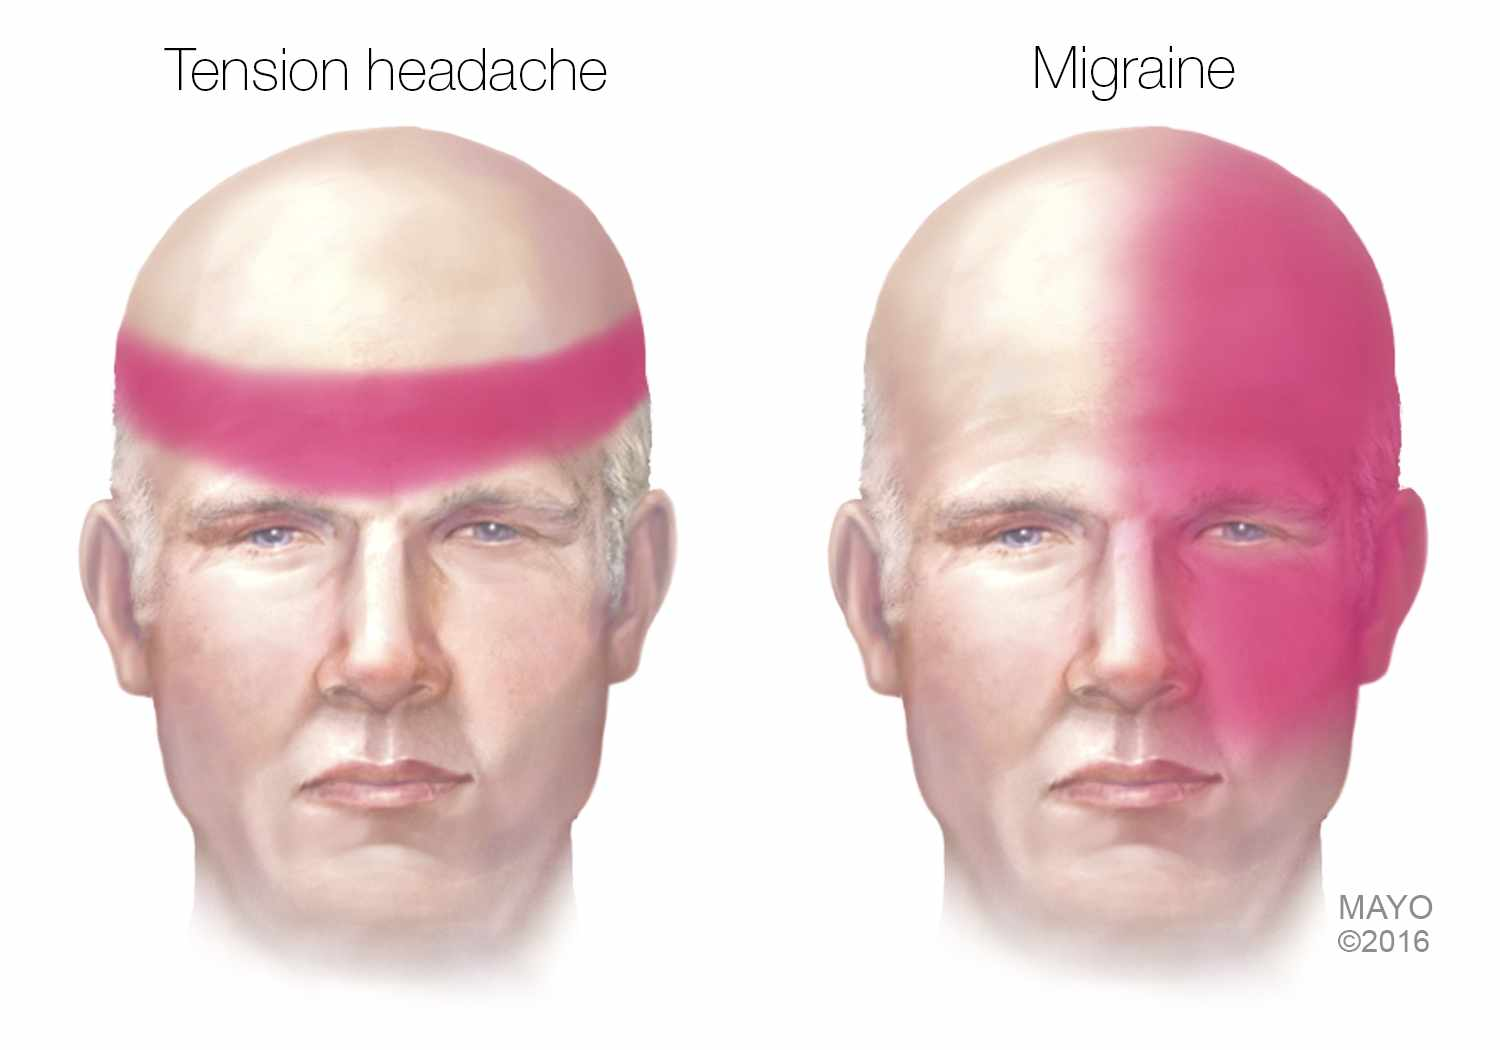 medical illustration of tension and migraine headaches